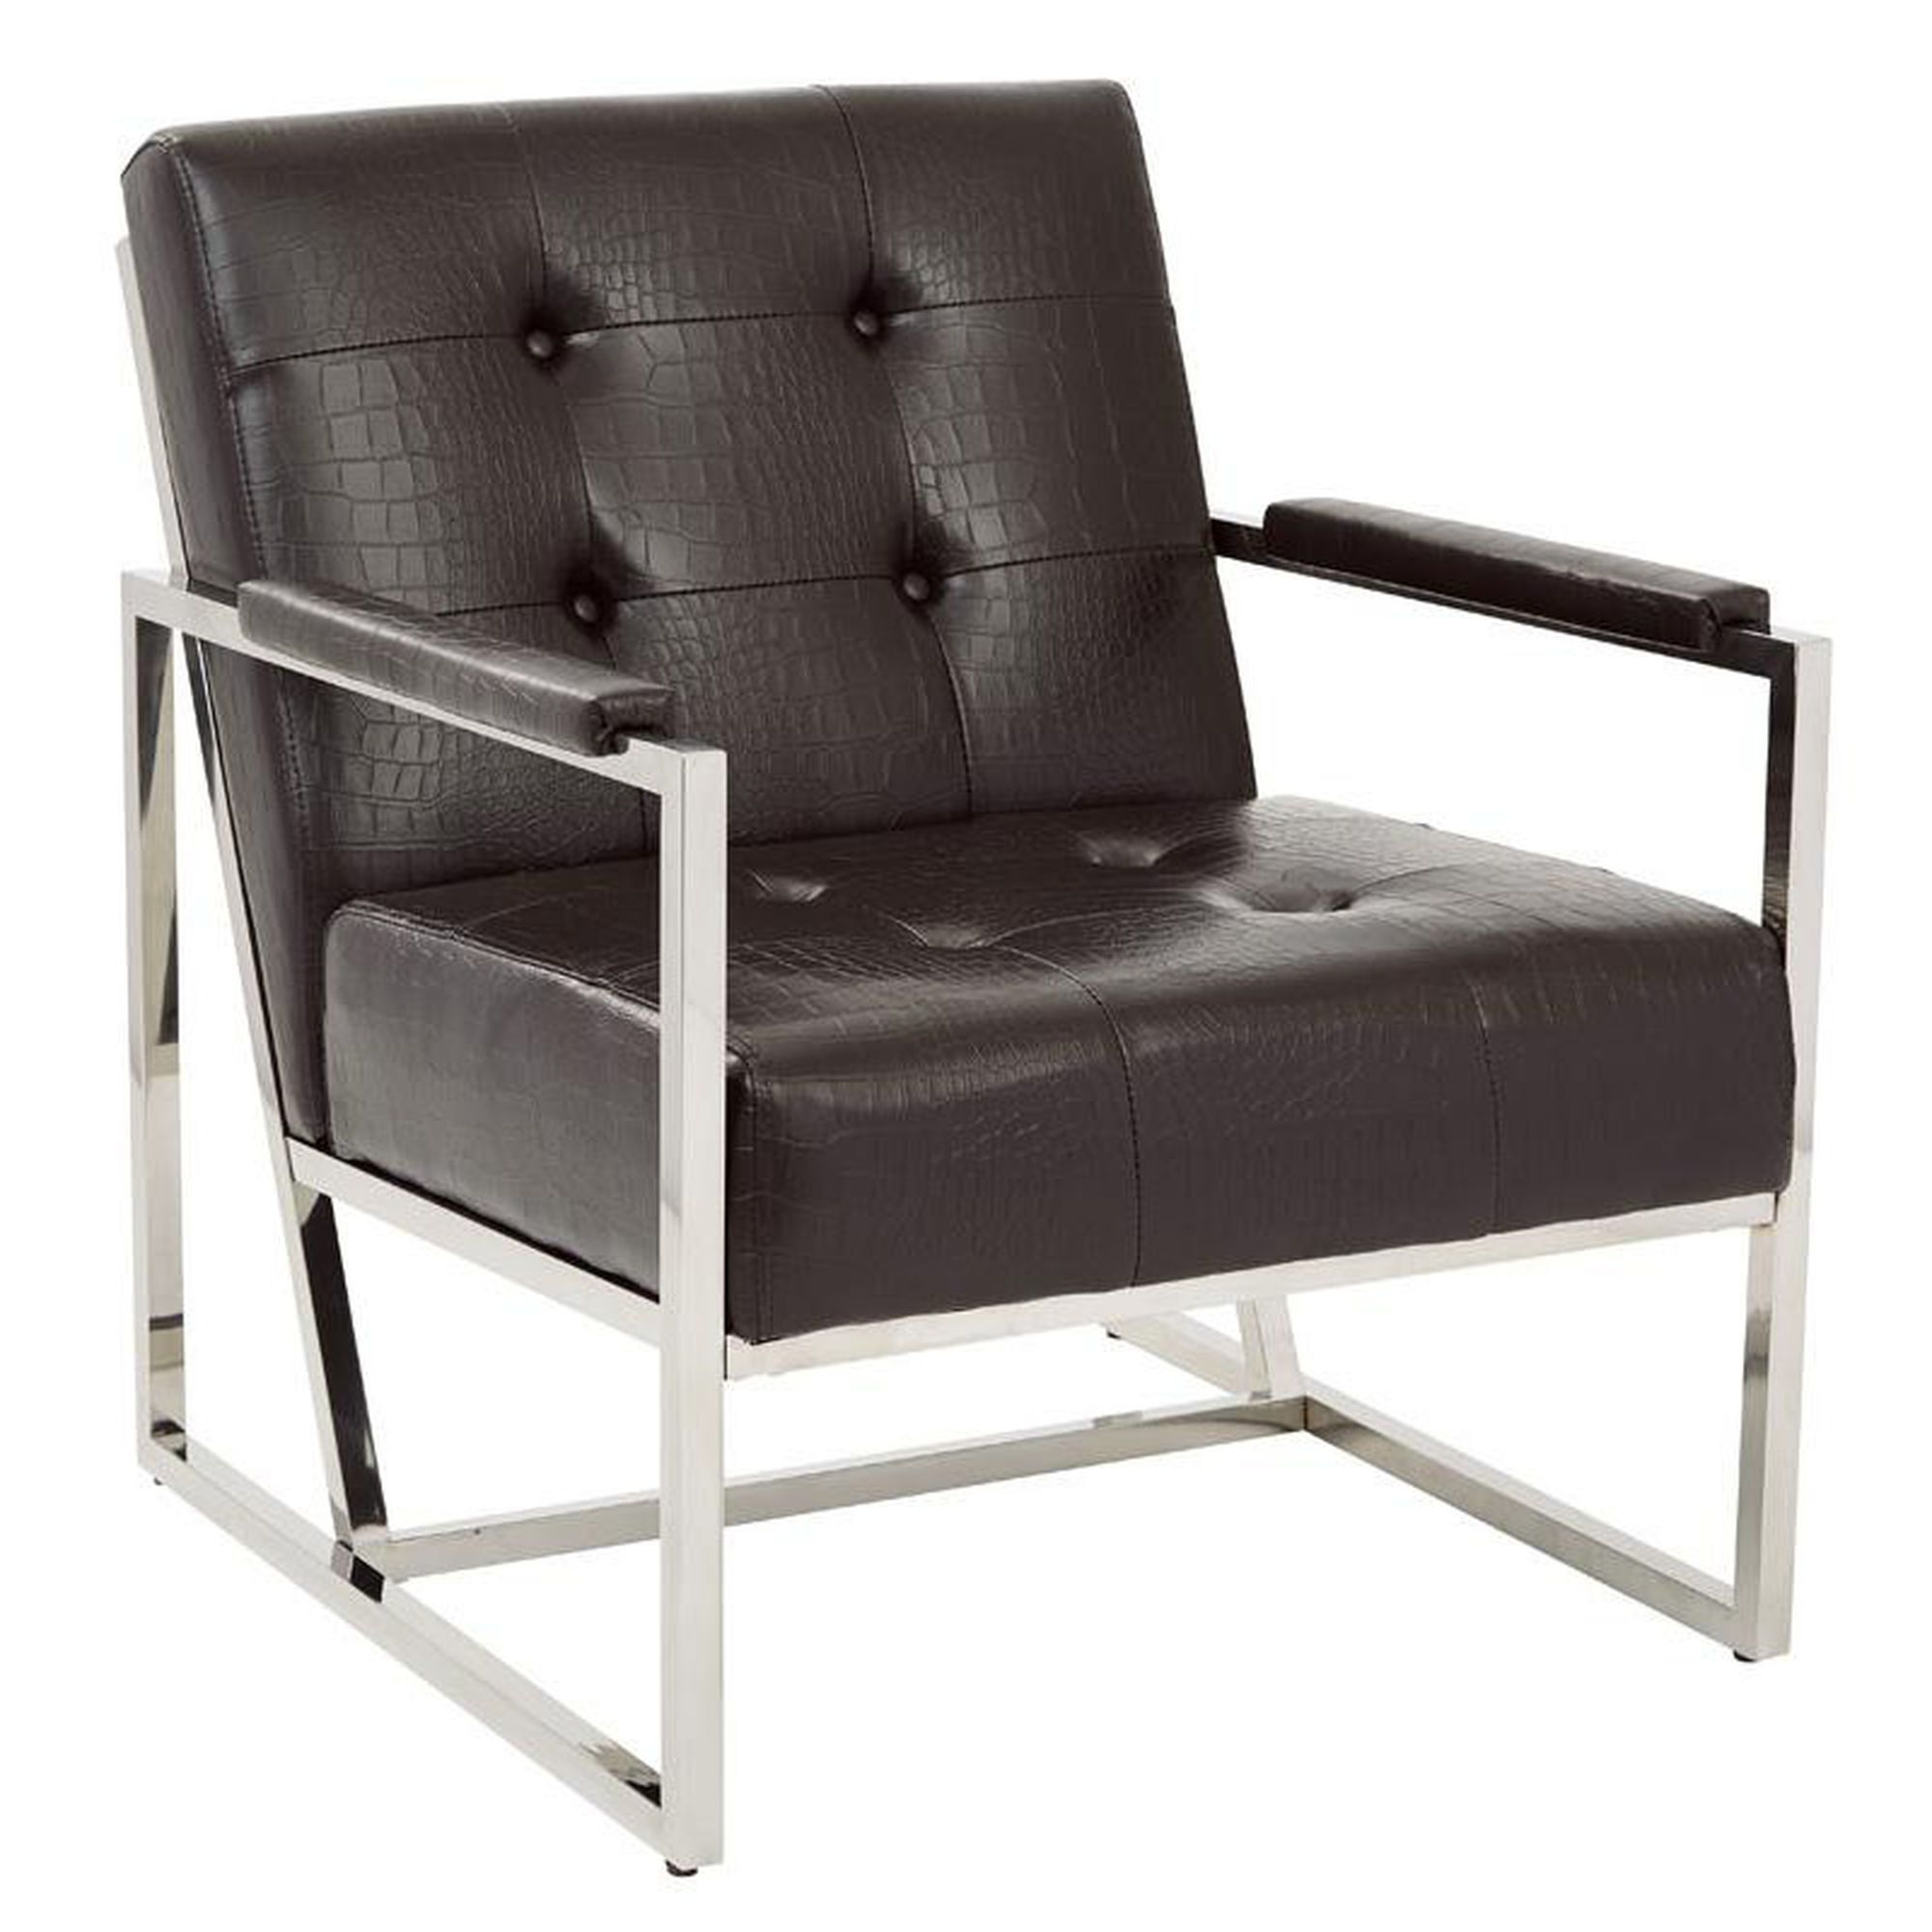 biz chair com outdoor chairs for sporting events ave six nathan modern tufted faux leather espresso croc office star products nat51 c43 os at bizchair